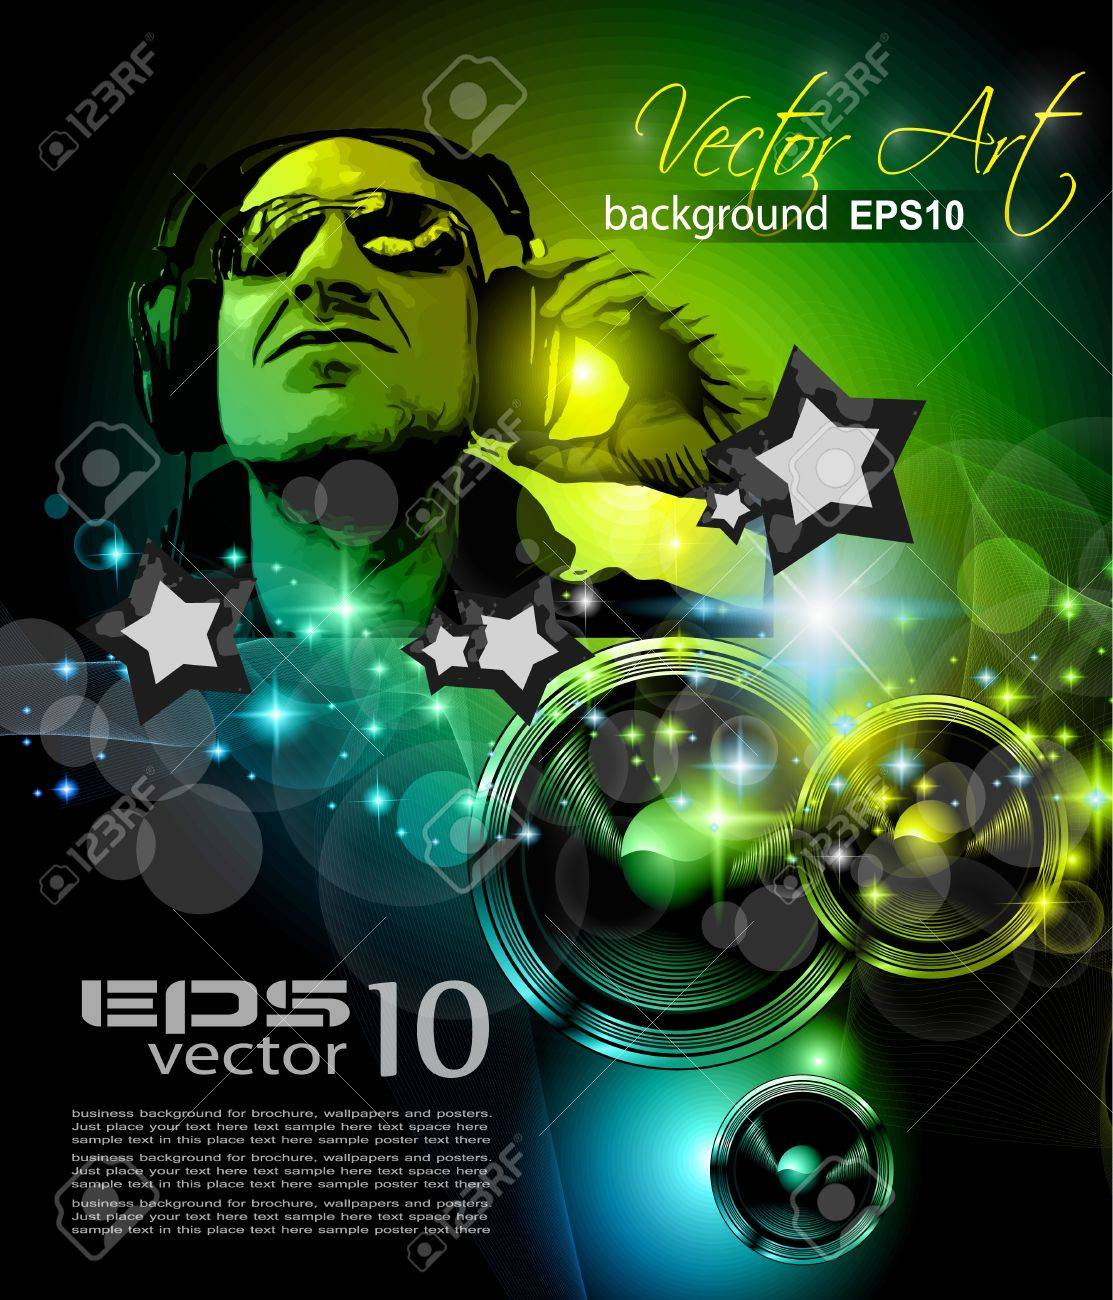 Alternative Discoteque Music Flyer for   Miami night clubs and music events. Stock Vector - 13384117